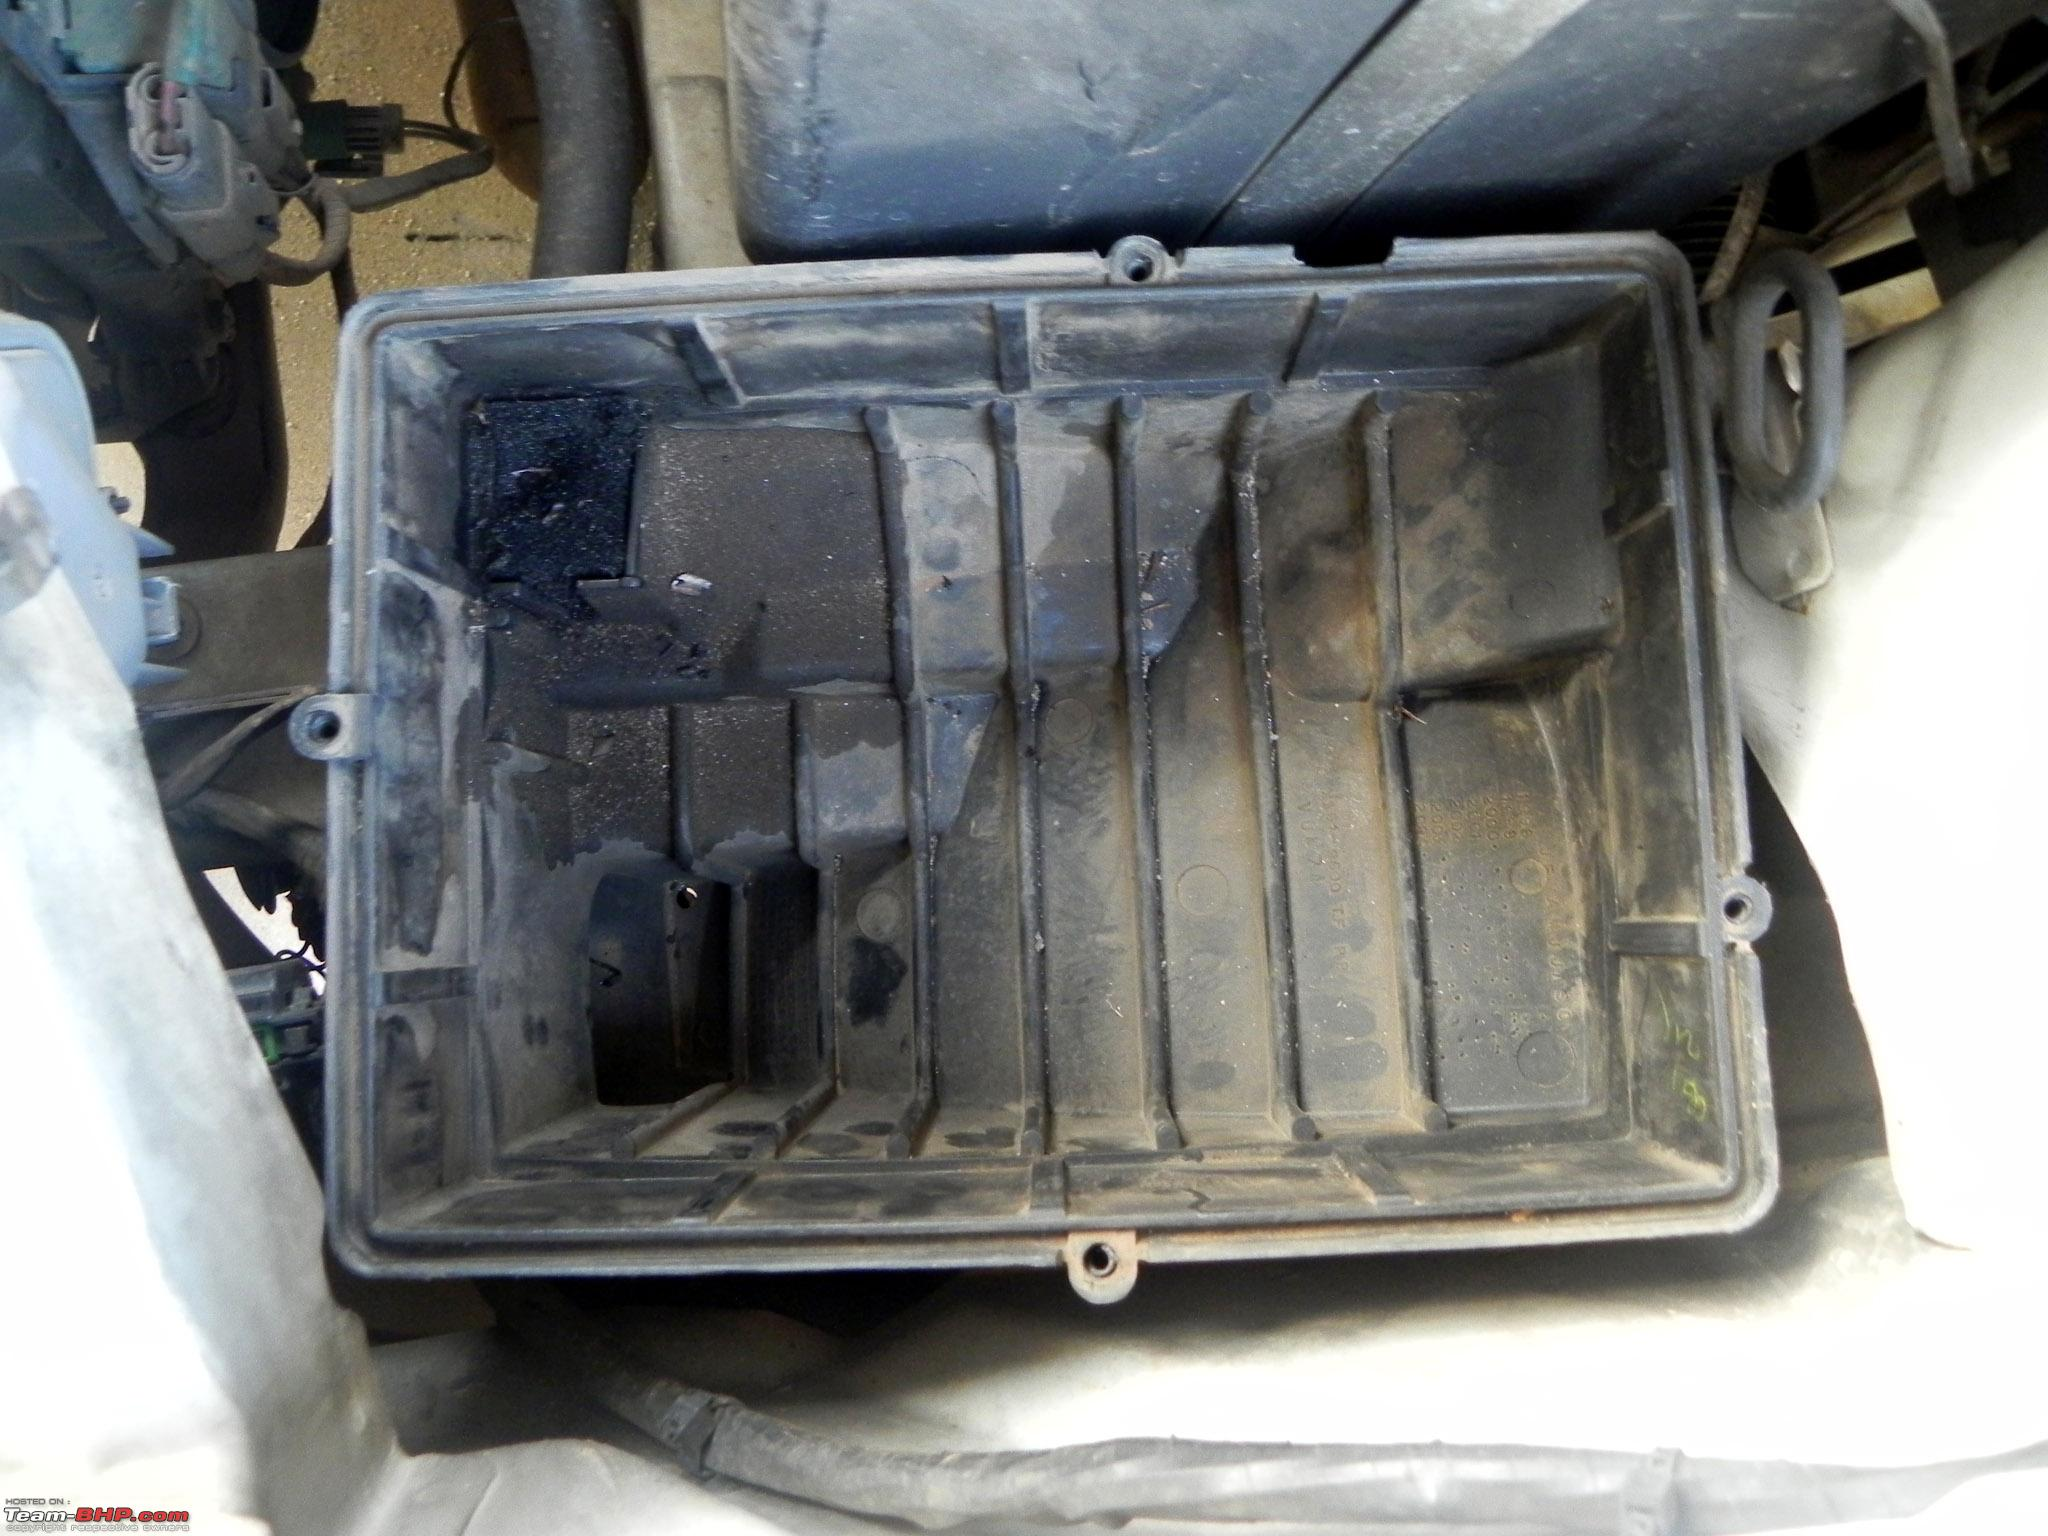 Peugeot 307 Main Fuse Box furthermore 103734 List Diys Your Car Pictorial Guide besides Fuel Gauge Wiring in addition Honda Civic Oil Filter Location as well 103734 List Diys Your Car Pictorial Guide 4. on 103734 list diys your car pictorial guide 3